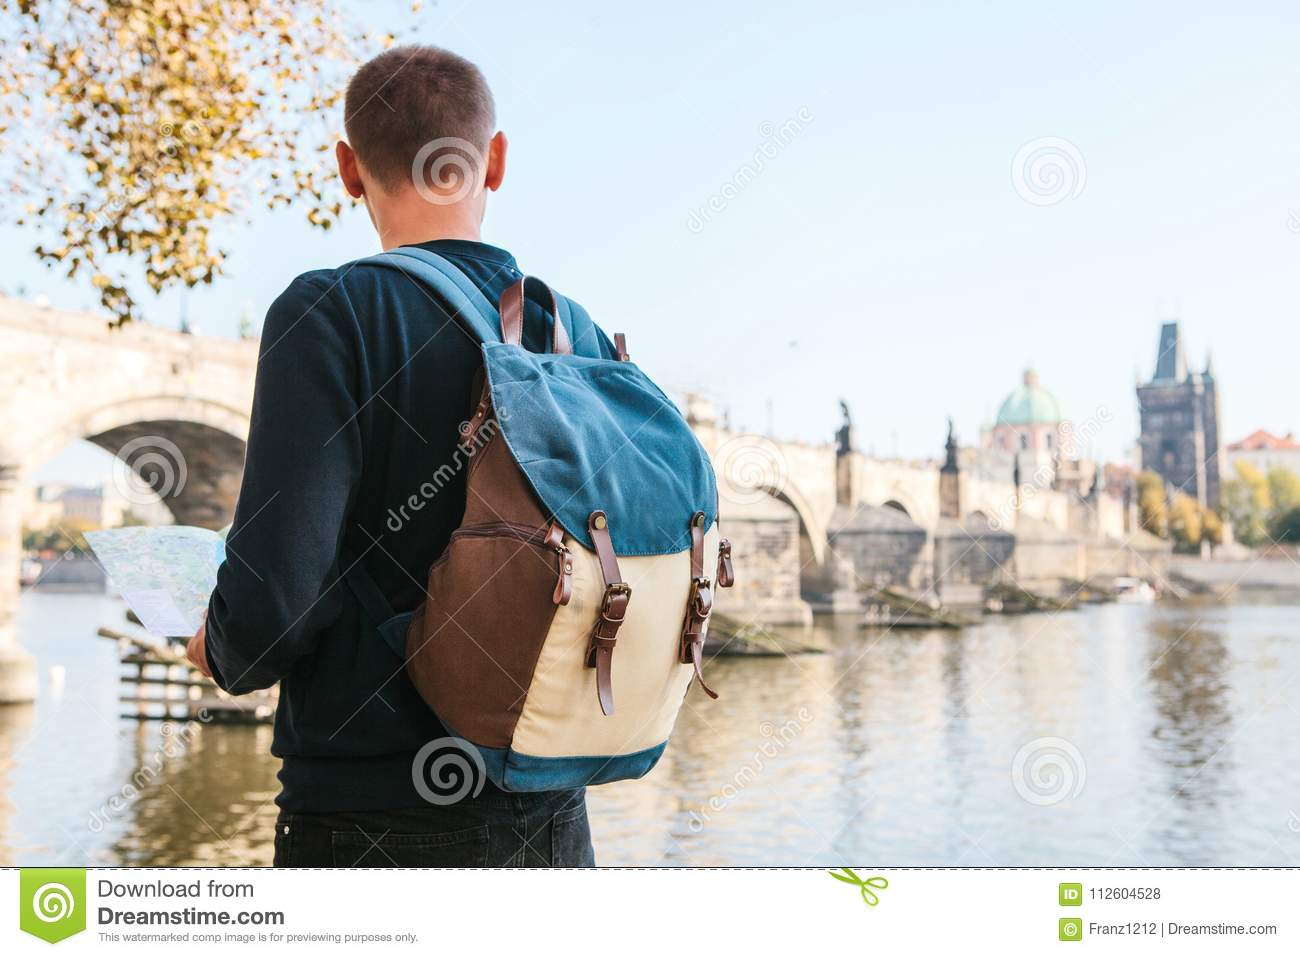 dcdbfa5abfbf A young tourist man with a backpack standing next to the river Vltava in  Prague looks